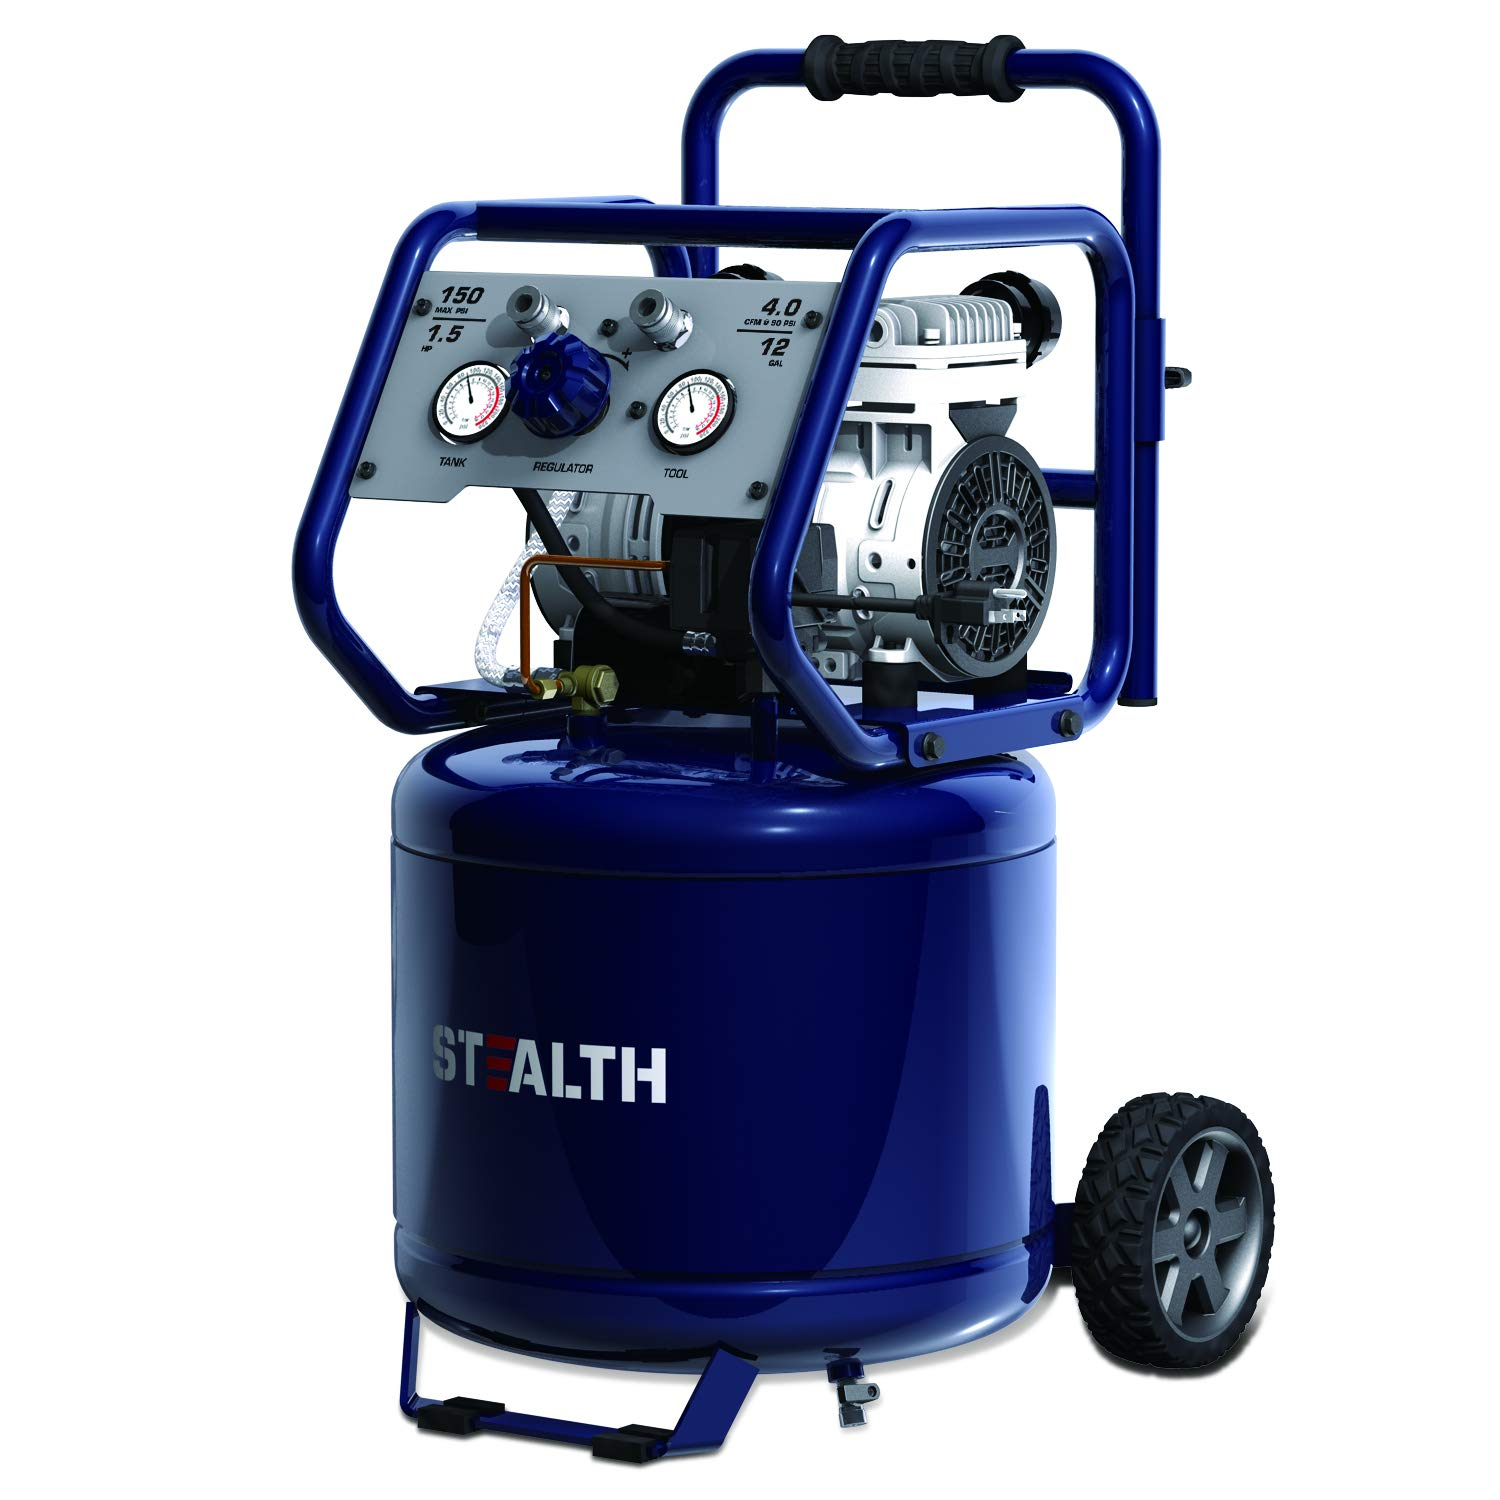 STEALTH Ultra Quiet Air Compressor, Oil-Free 1.5 HP 12 Gallon, 150 PSI, Long Lifecycle >1000H, Noise Less than 70 Decibels, Model: SAQ-11215